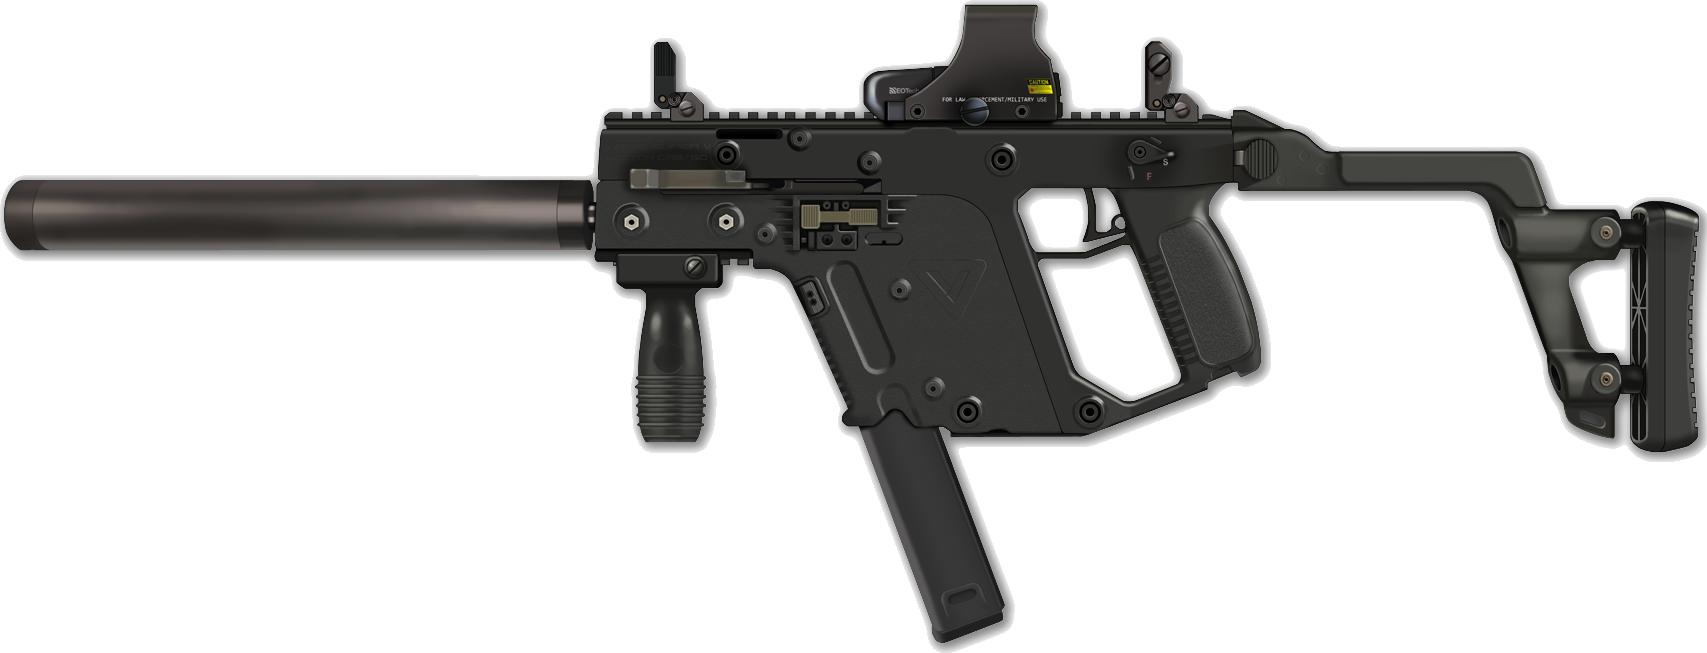 KRISS Vector Super V Backgrounds on Wallpapers Vista